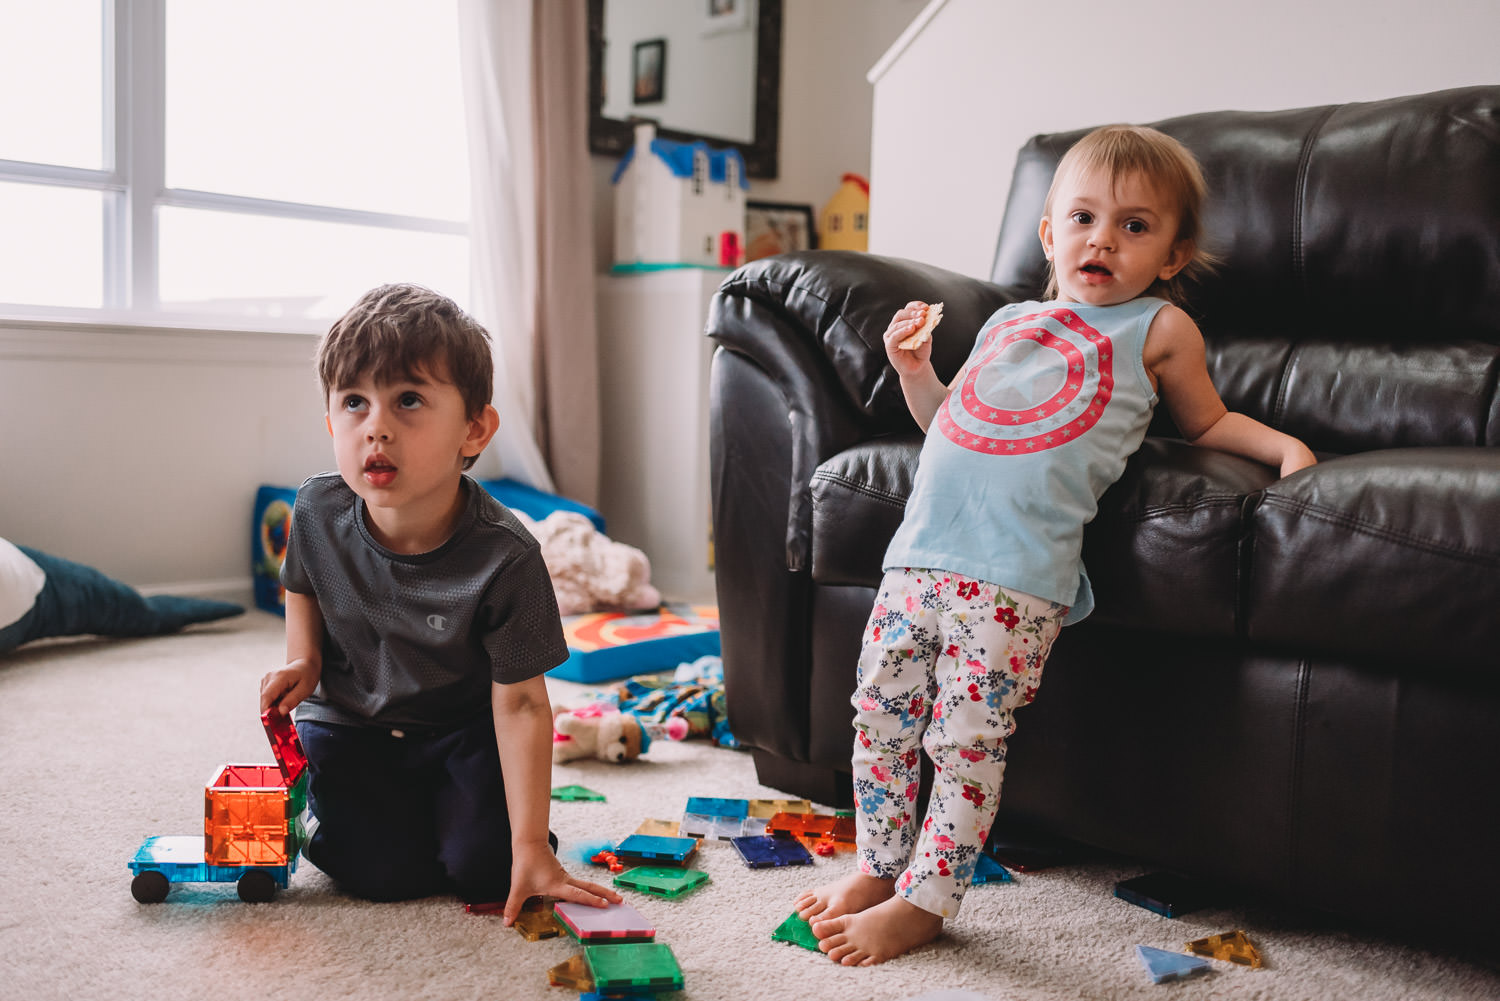 Two children play and watch TV in their living room.